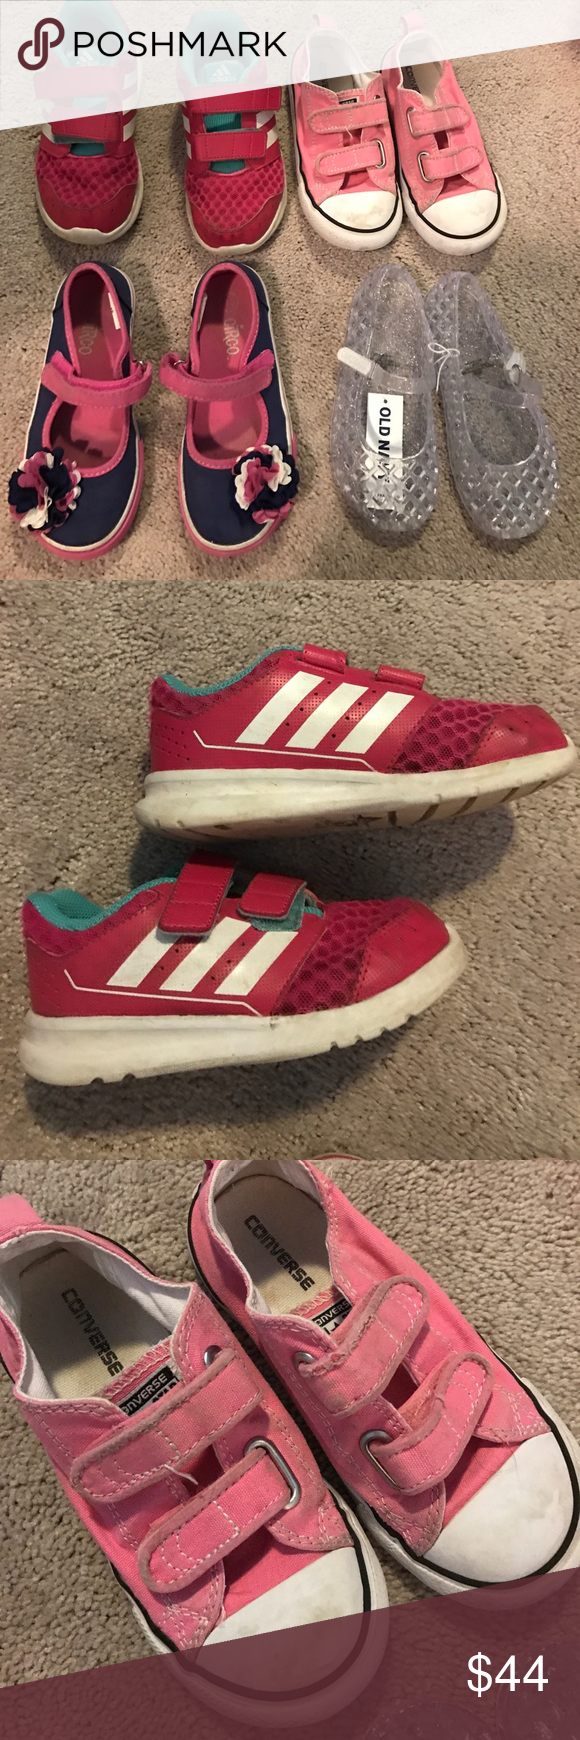 831ee7d6a4e Toddler girls size 10 shoe bundle Adidas